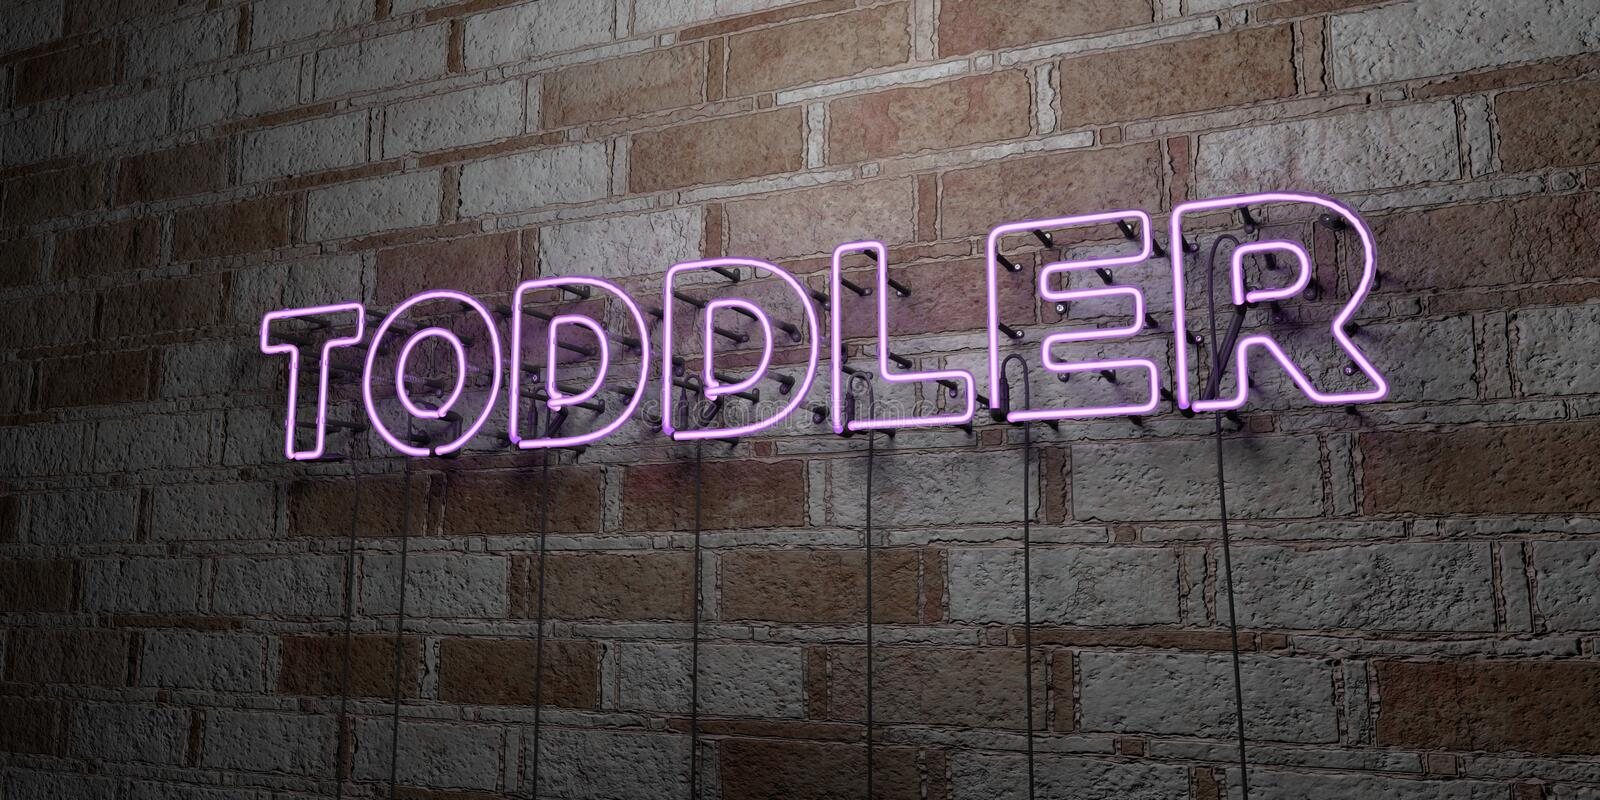 TODDLER - Glowing Neon Sign on stonework wall - 3D rendered royalty free stock illustration. Can be used for online banner ads and direct mailers vector illustration